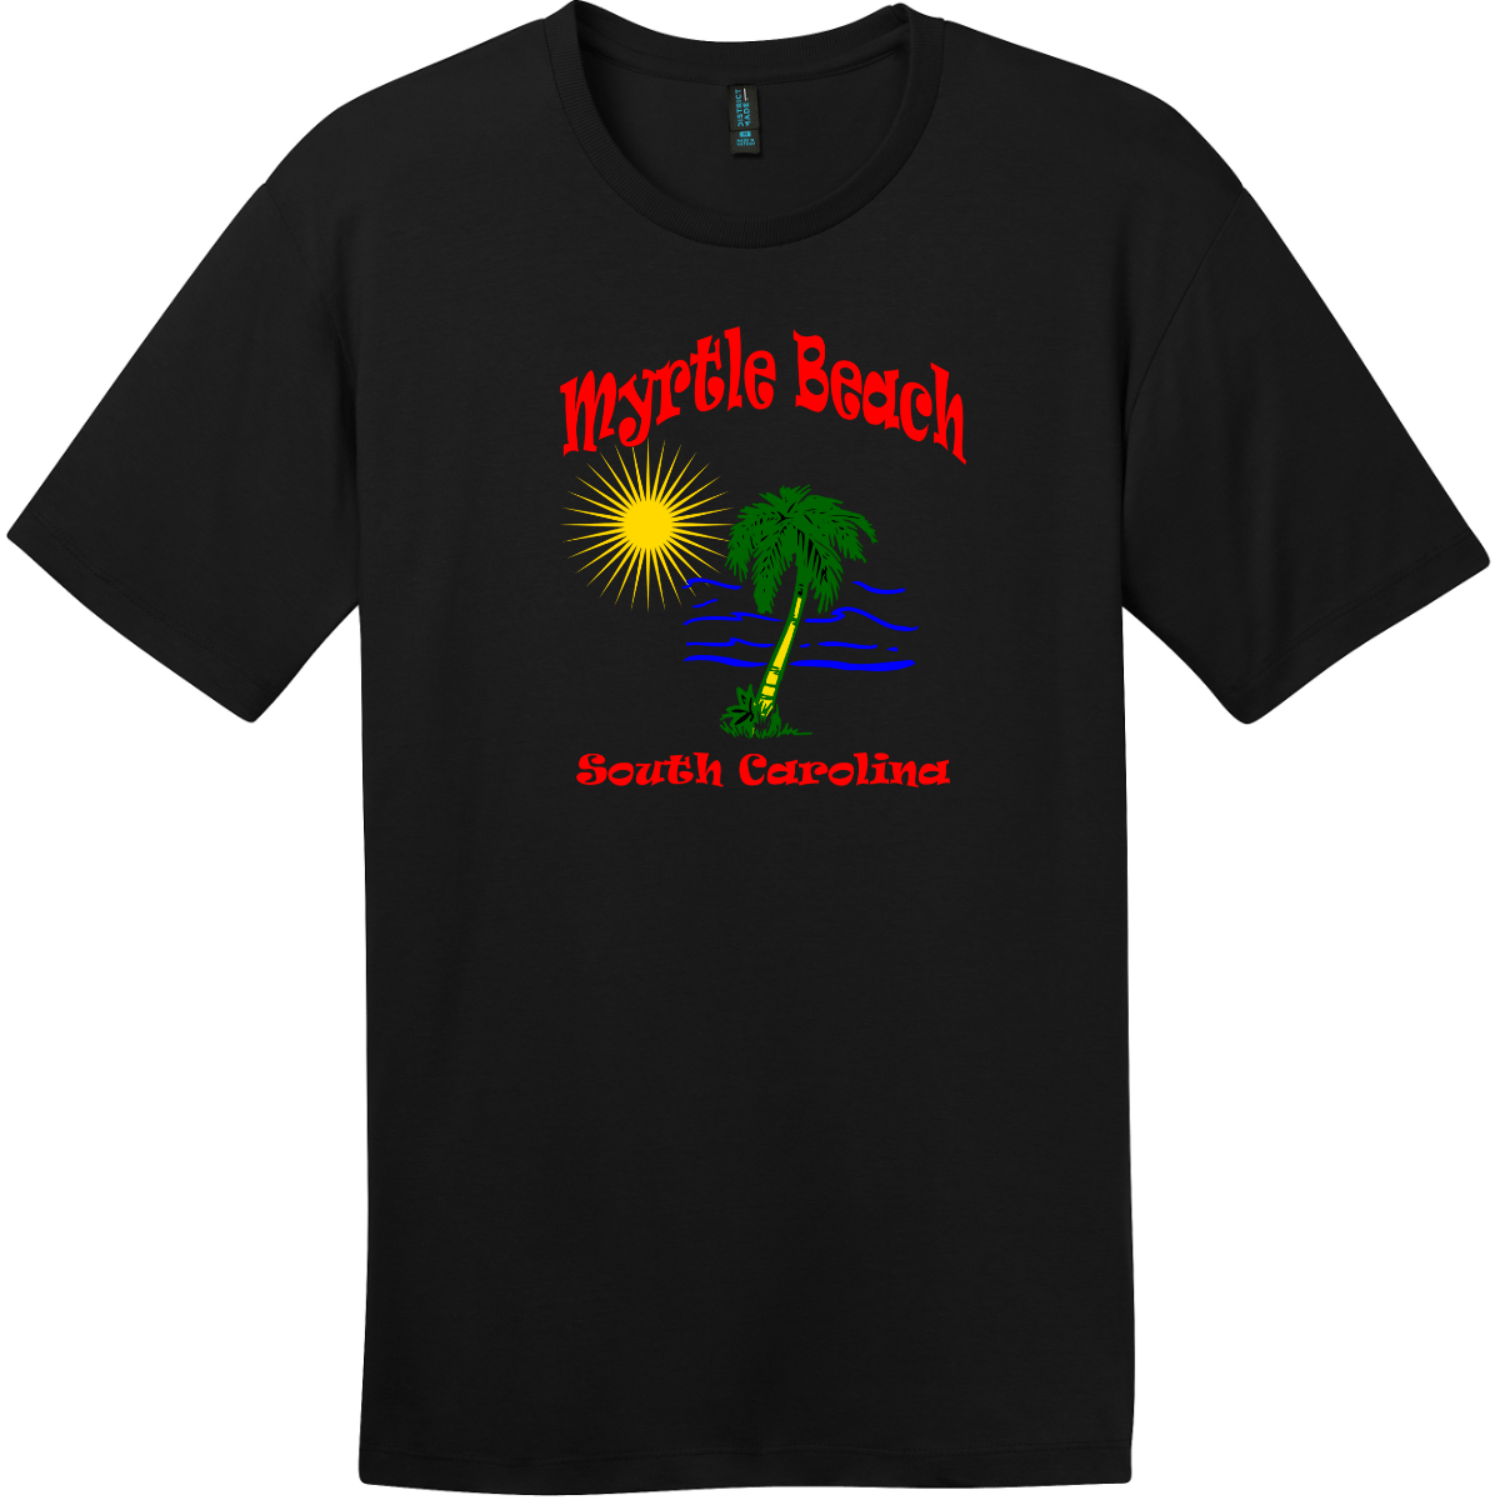 Myrtle Beach Palm Tree Water T-Shirt Jet Black District Perfect Weight Tee DT104